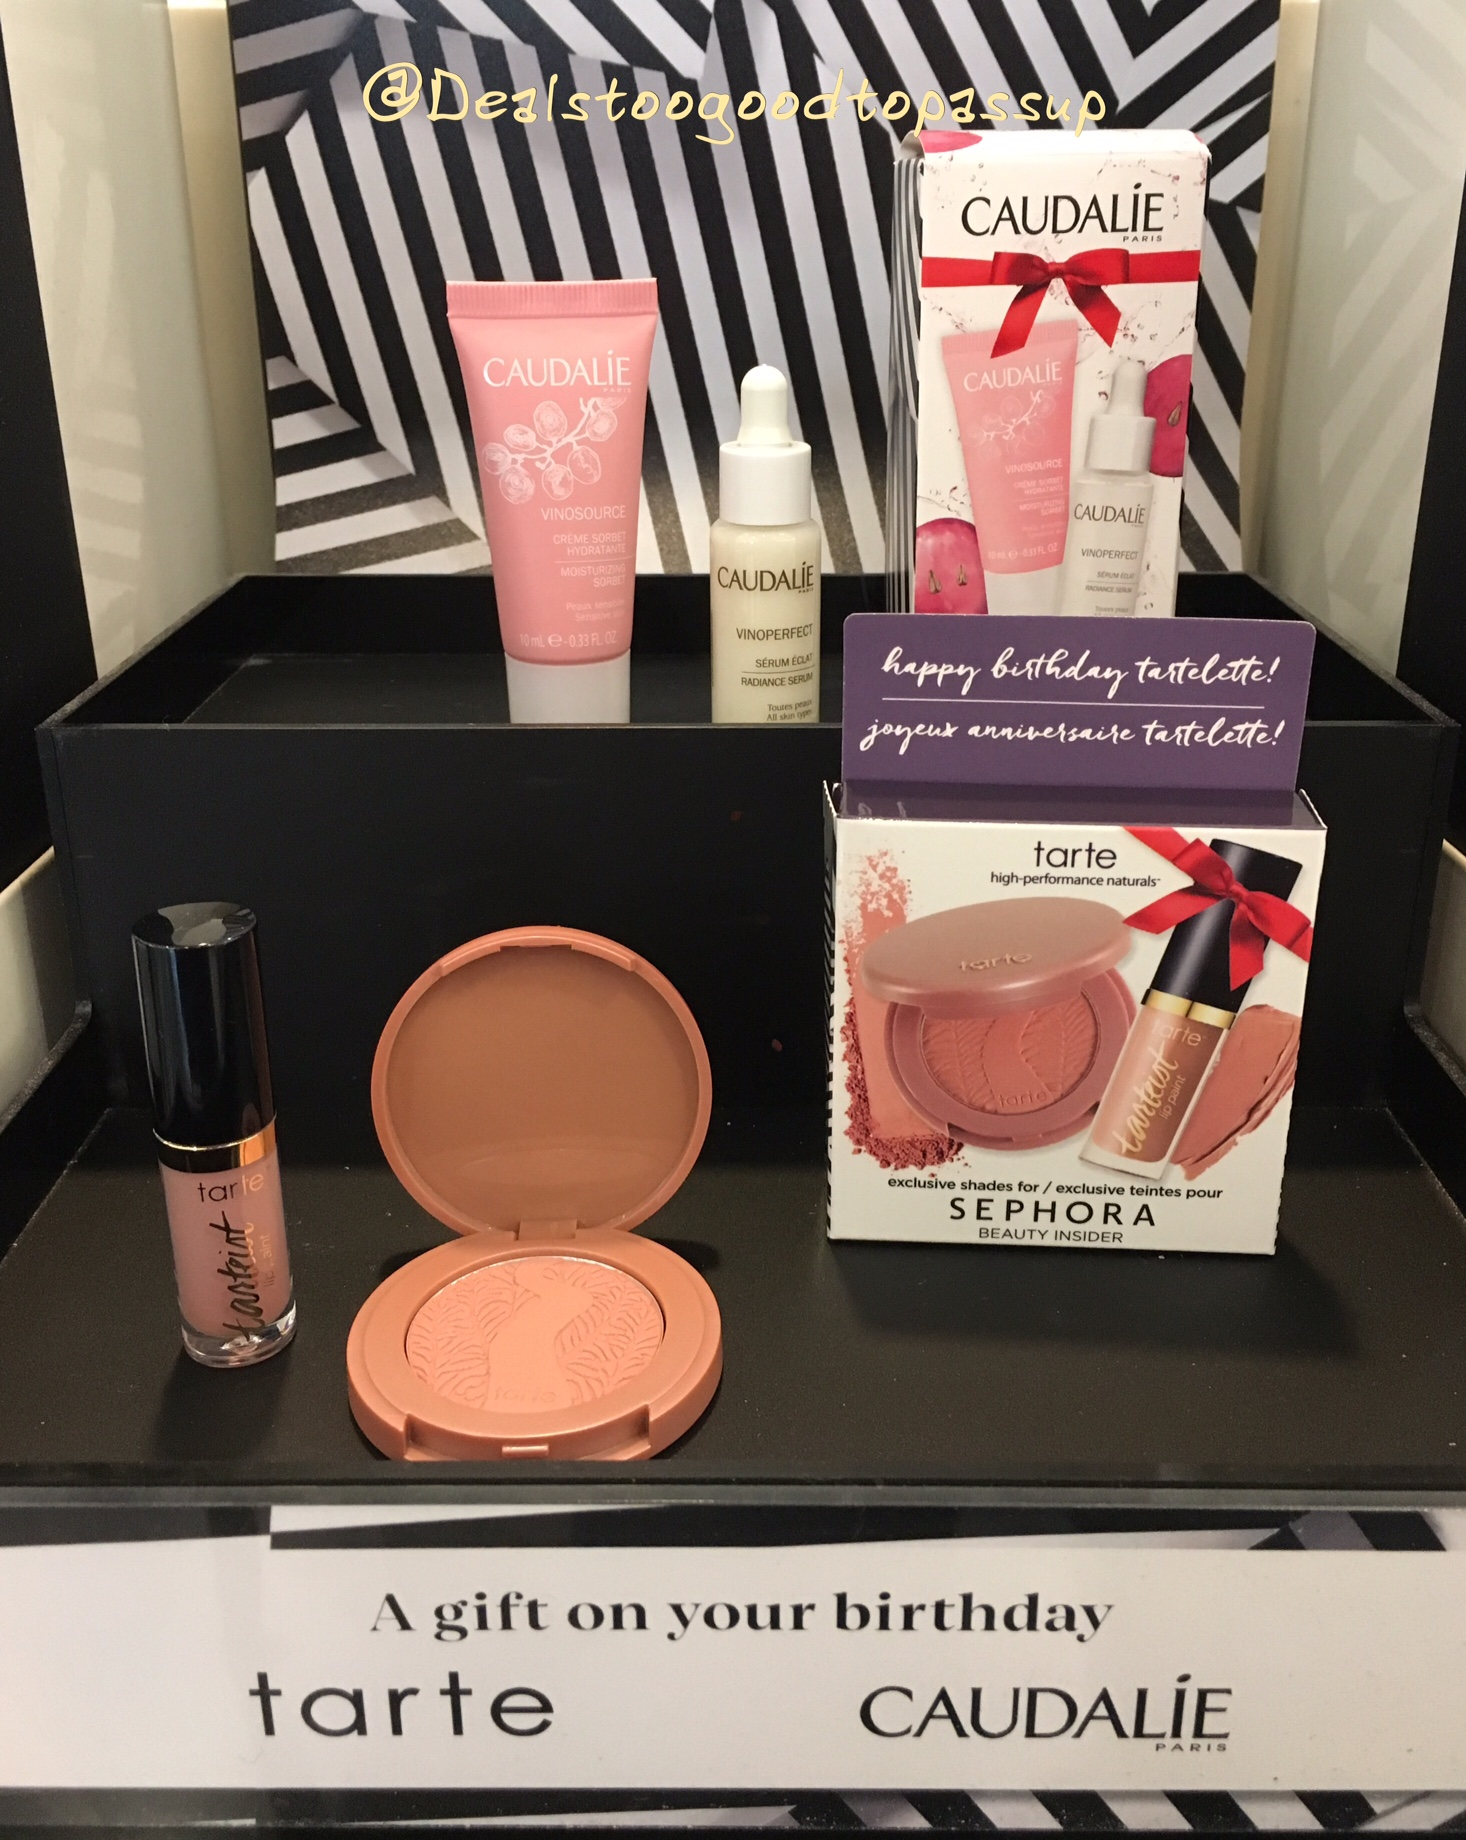 Three Options for the Sephora 2017 Birthday Gift From Caudalie, Tarte, and Jack Black